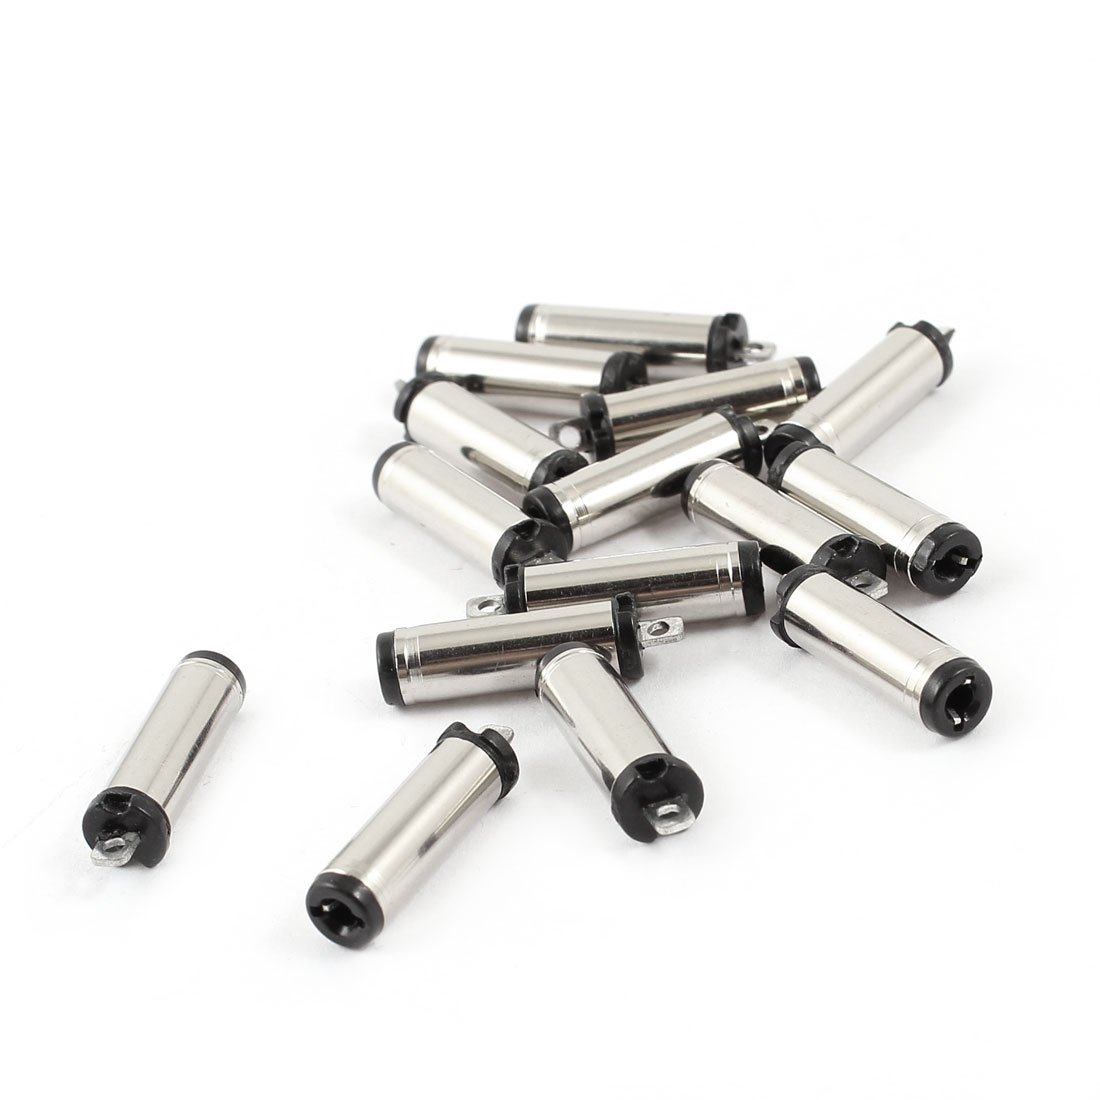 15pcs 5.5mm x 2.1mm x 21mm Power Supply Soldering Male DC Power Jack Connectors Adapter